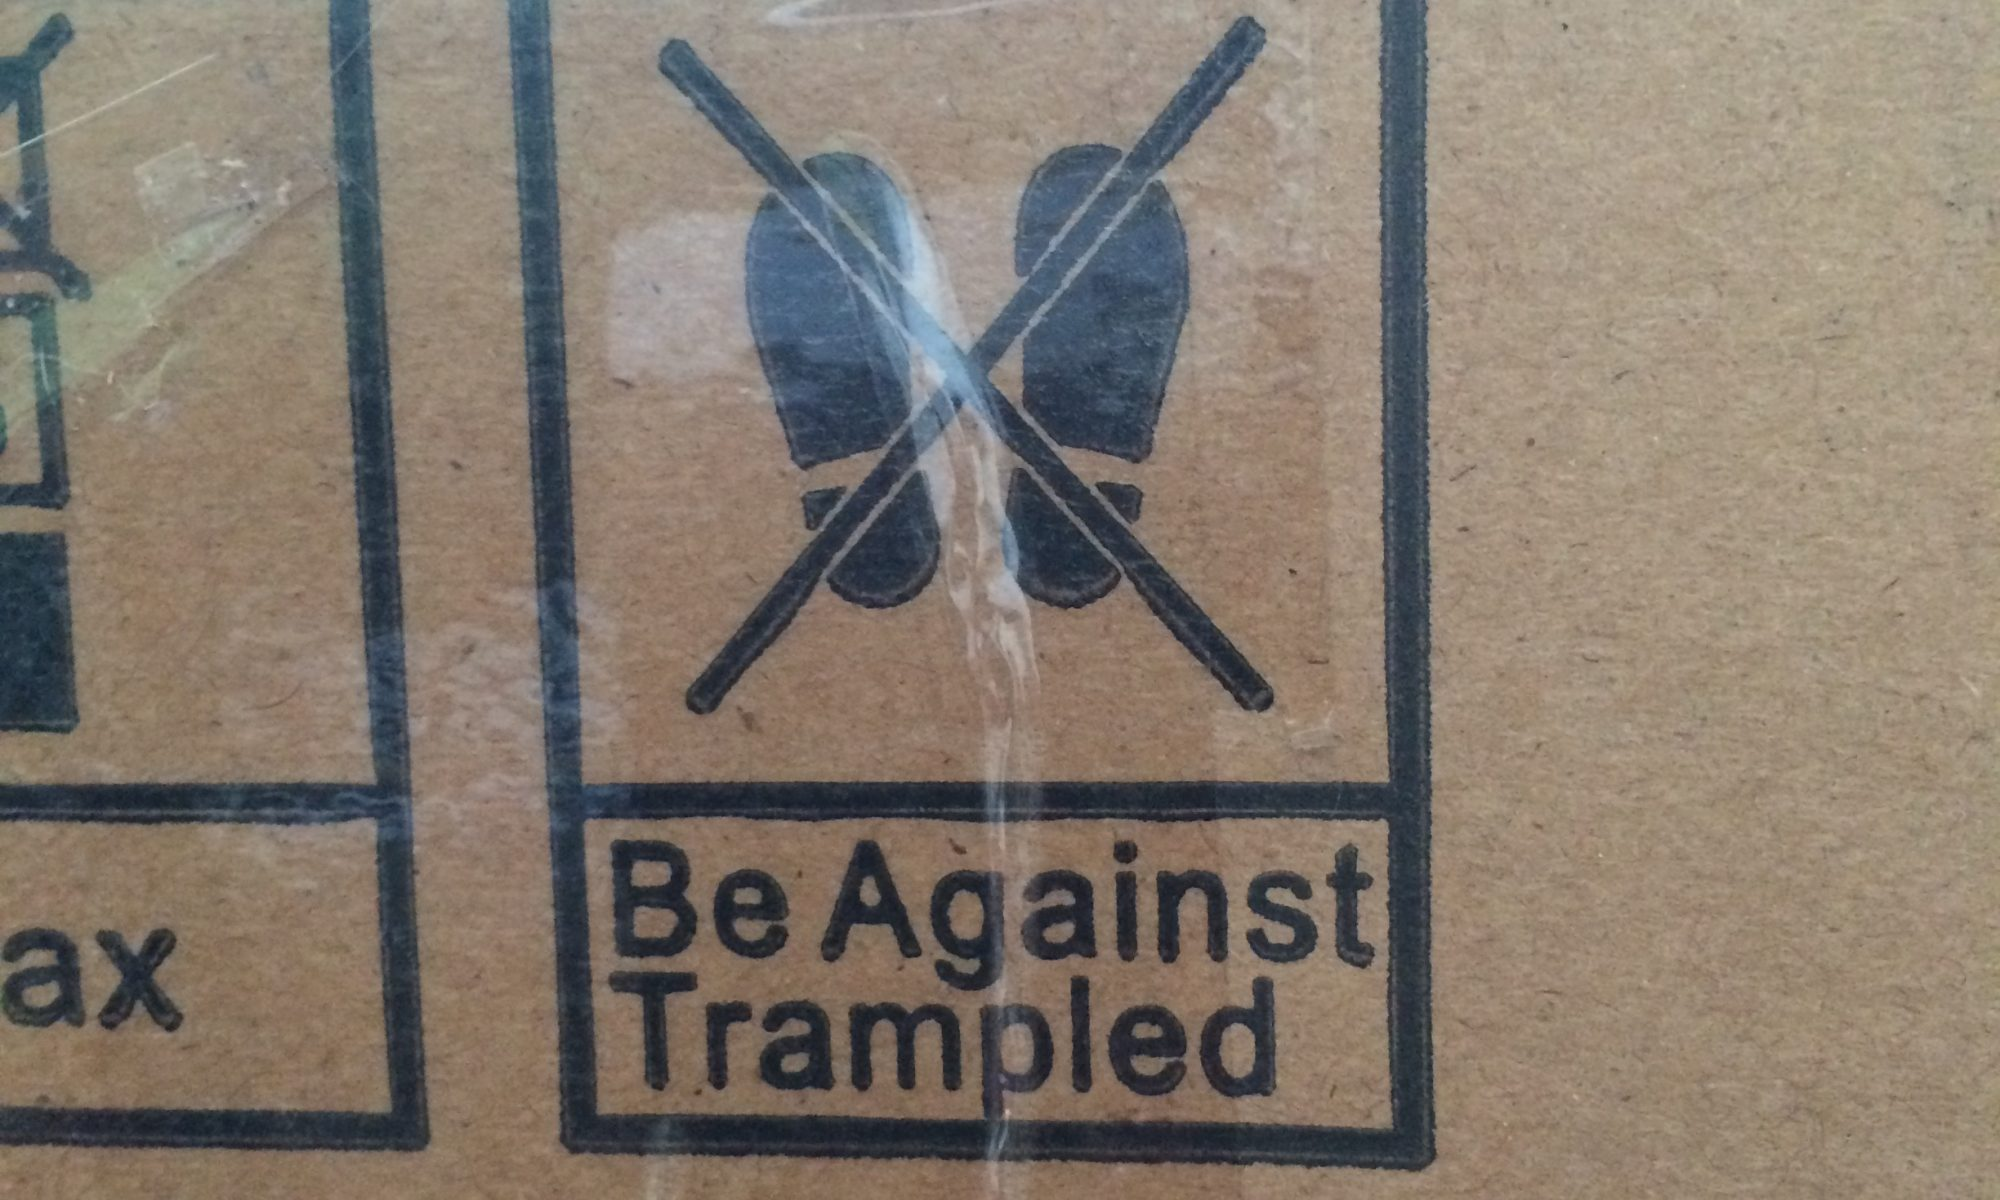 Cardboard box with sign saying Be Against Trampled.